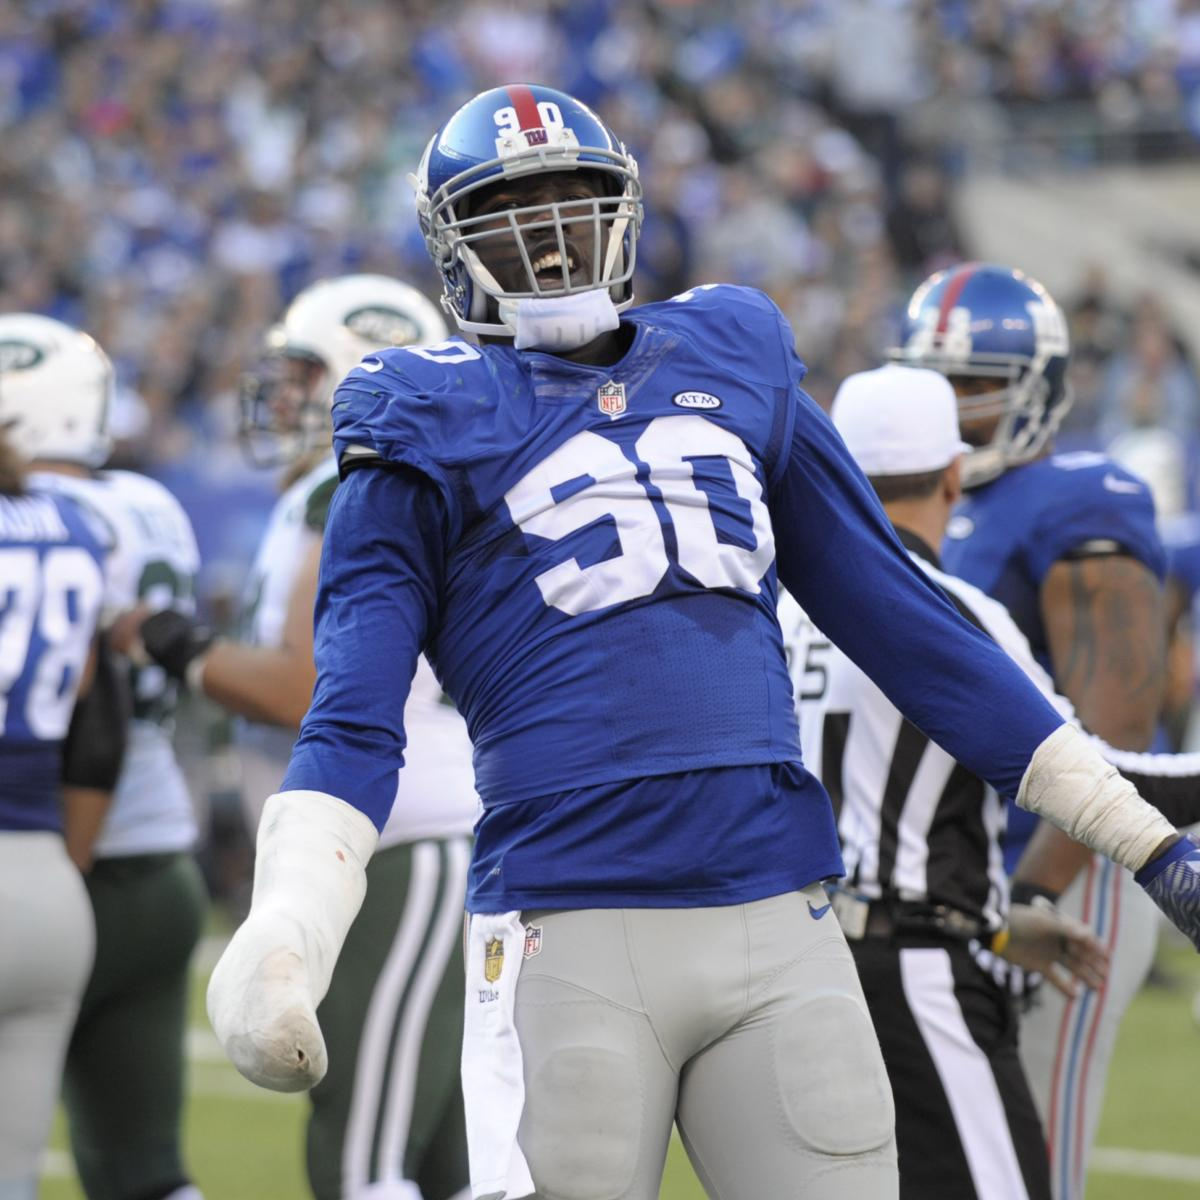 Jason Pierre Paul What Kind Of Firework: Jason Pierre-Paul Participates In Fireworks Safety PSA